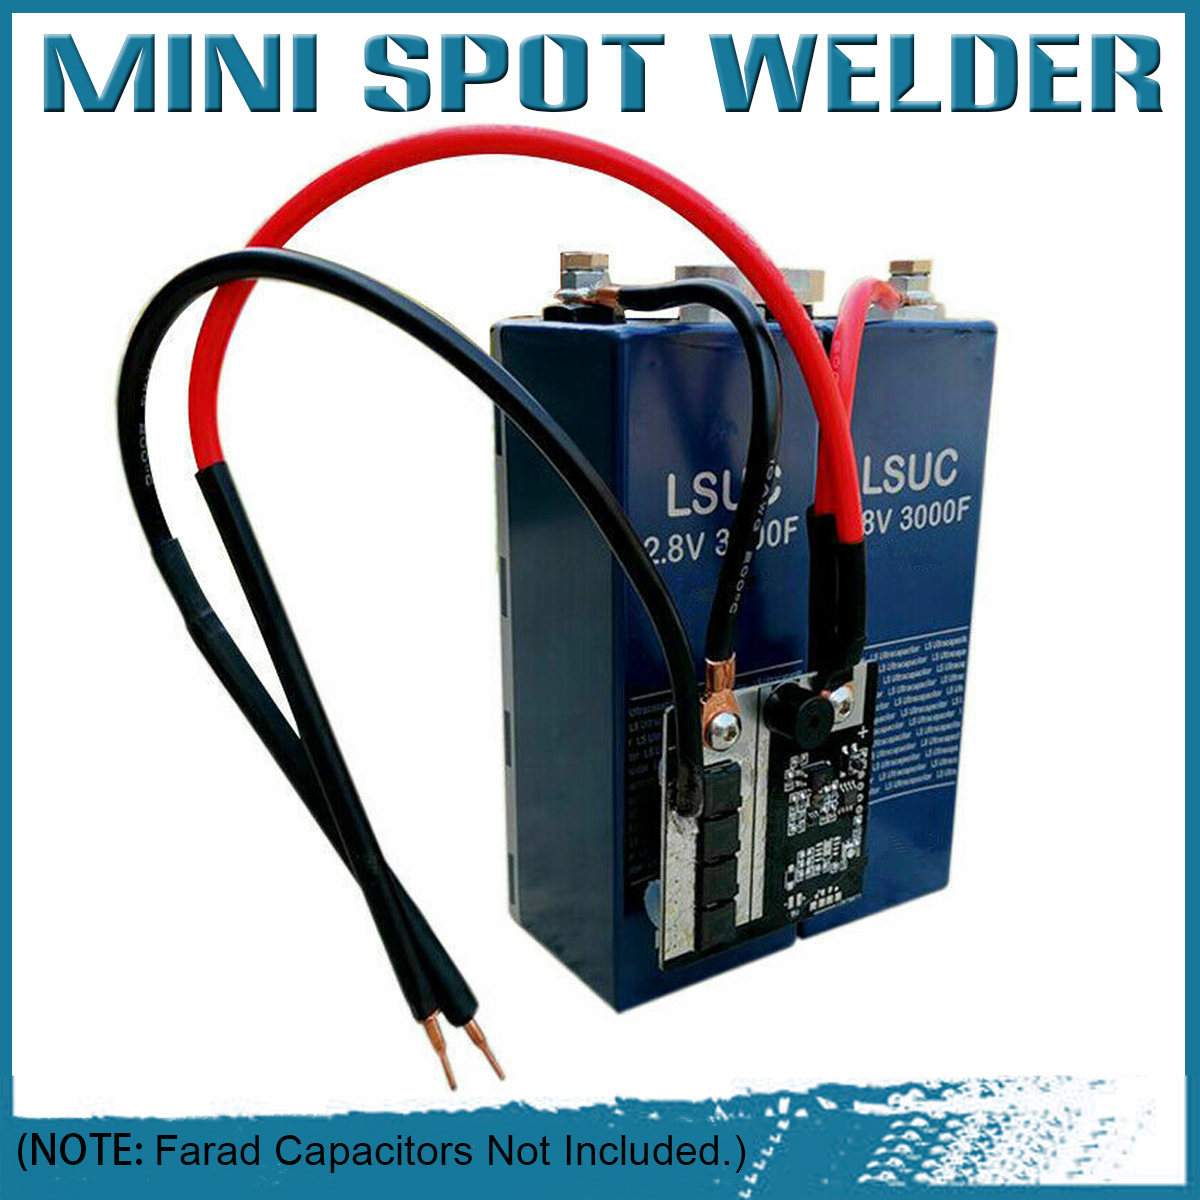 Portable 5.6V Spot Welder For 18650 Battery Box Assembly DIY Homemade Spot Welder Pens Welding Machine Tool